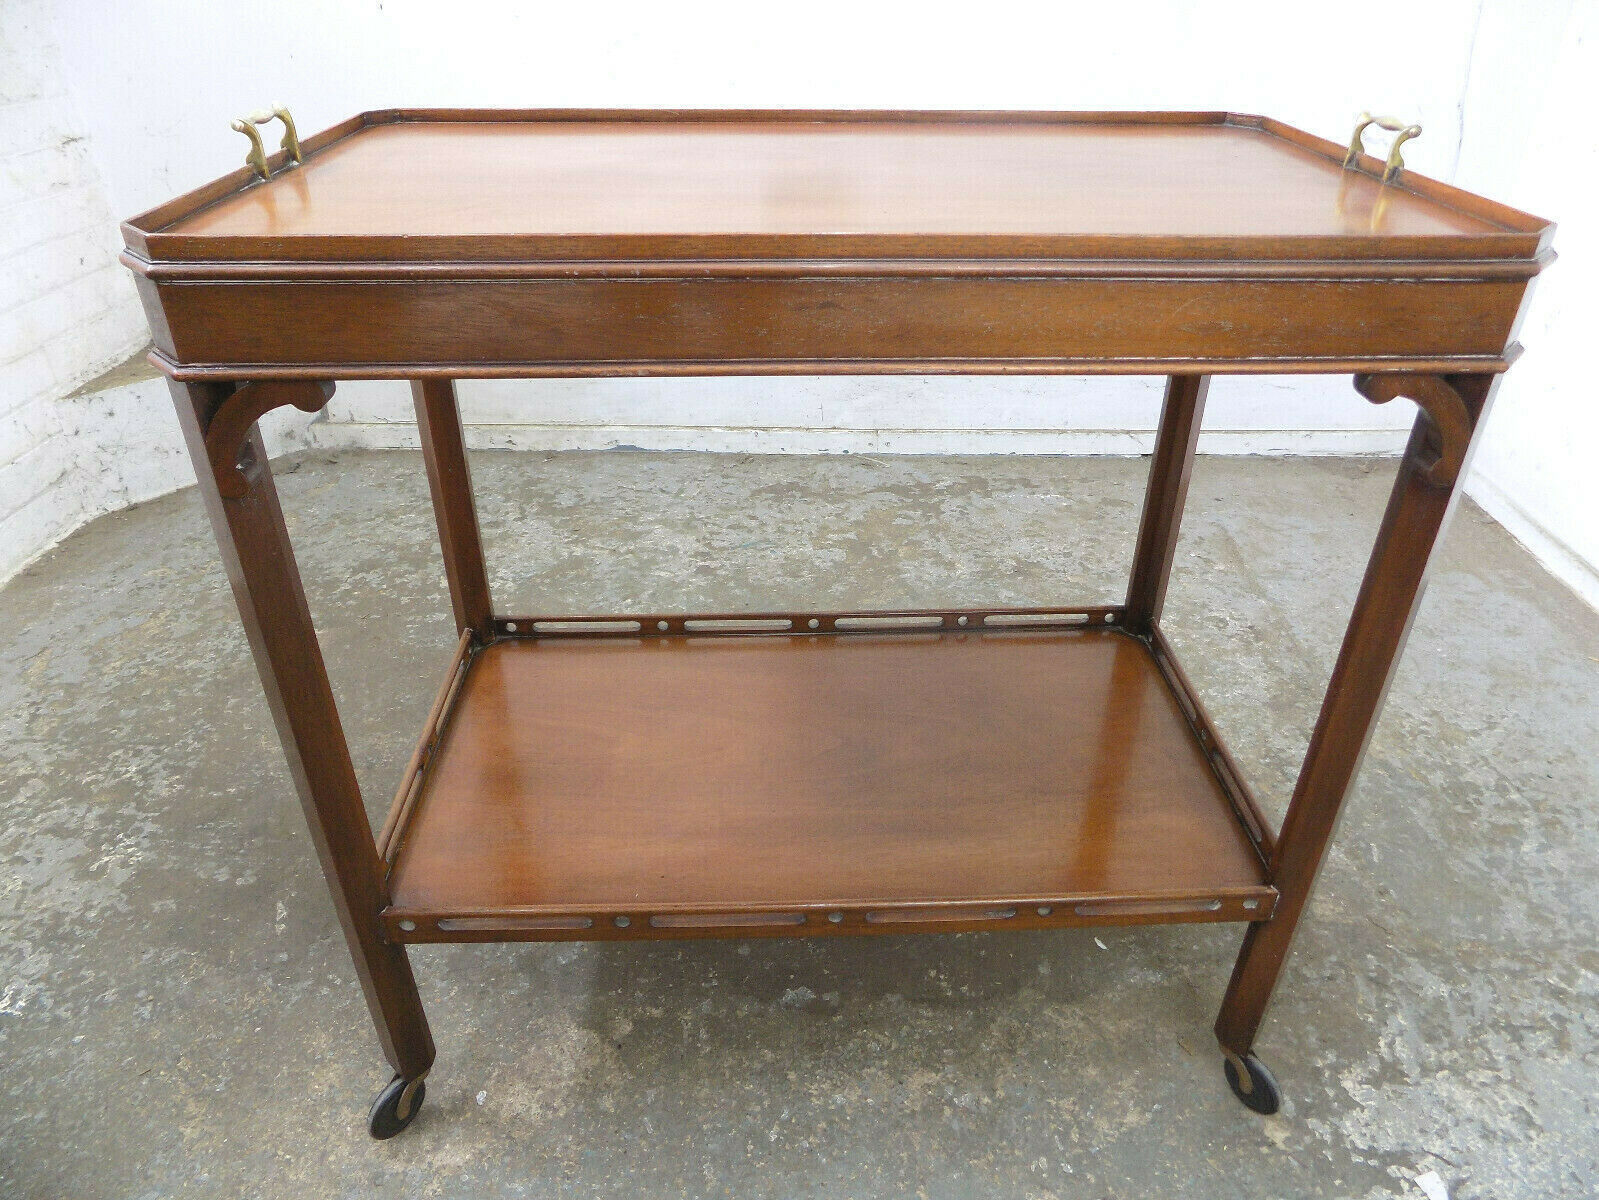 Trolley Coffee Table.Vintage Mahogany 2 Tier Hostess Trolley Side Table Serving Hall Table Wheels